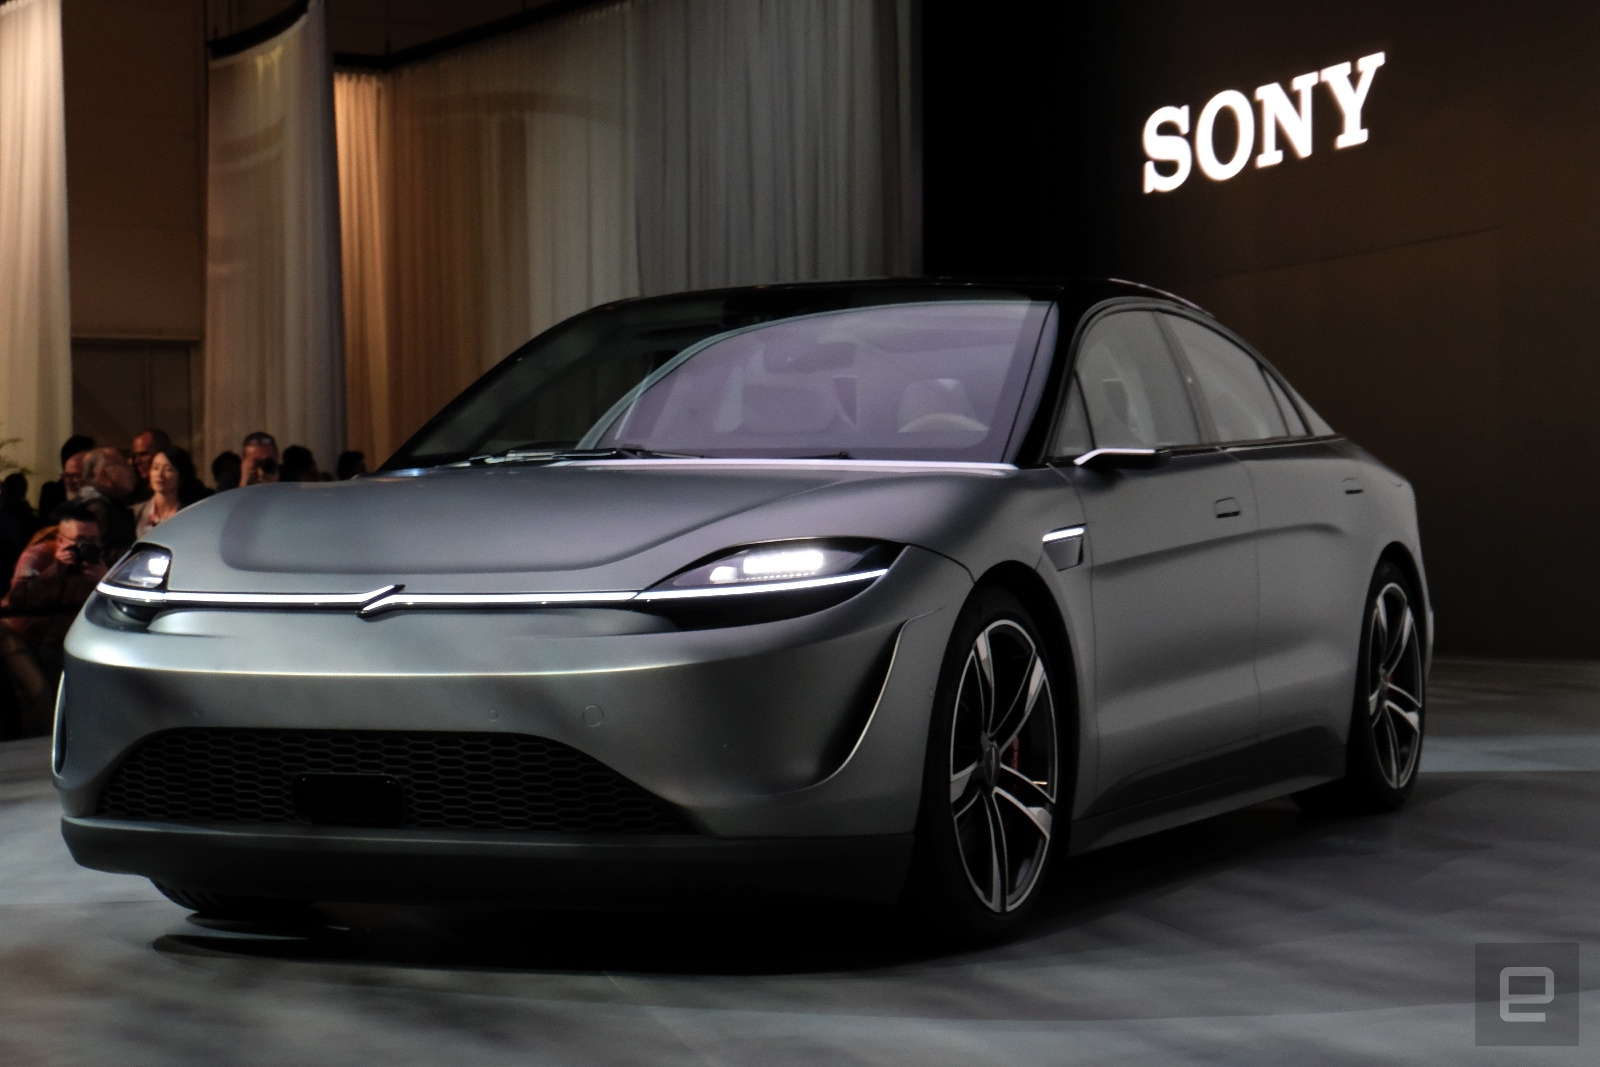 Many of us raised eyebrows and held them up there for a while as the internationally renowned tech company unveiled its first attempt at a passenger car.